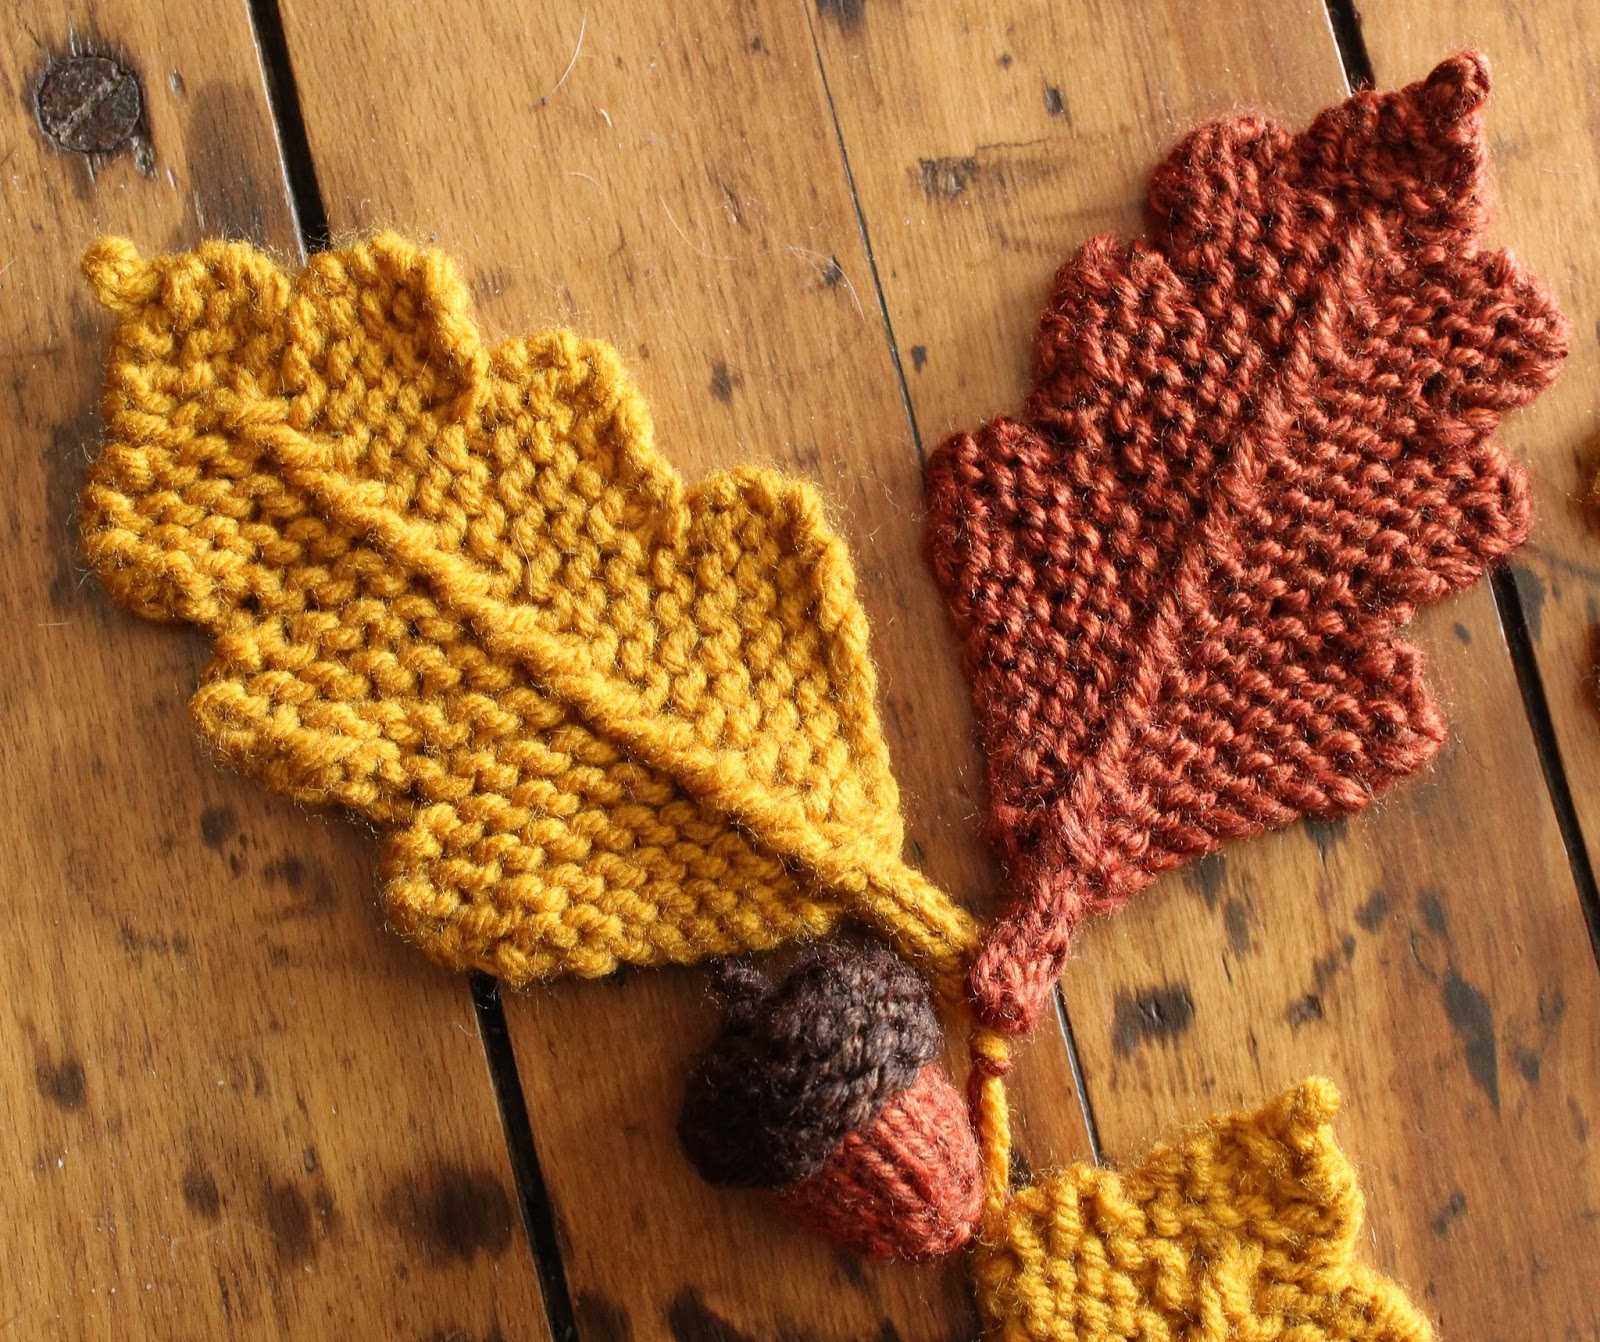 September Violets: Two Small Knitting Patterns ... Acorns & Ghosts!